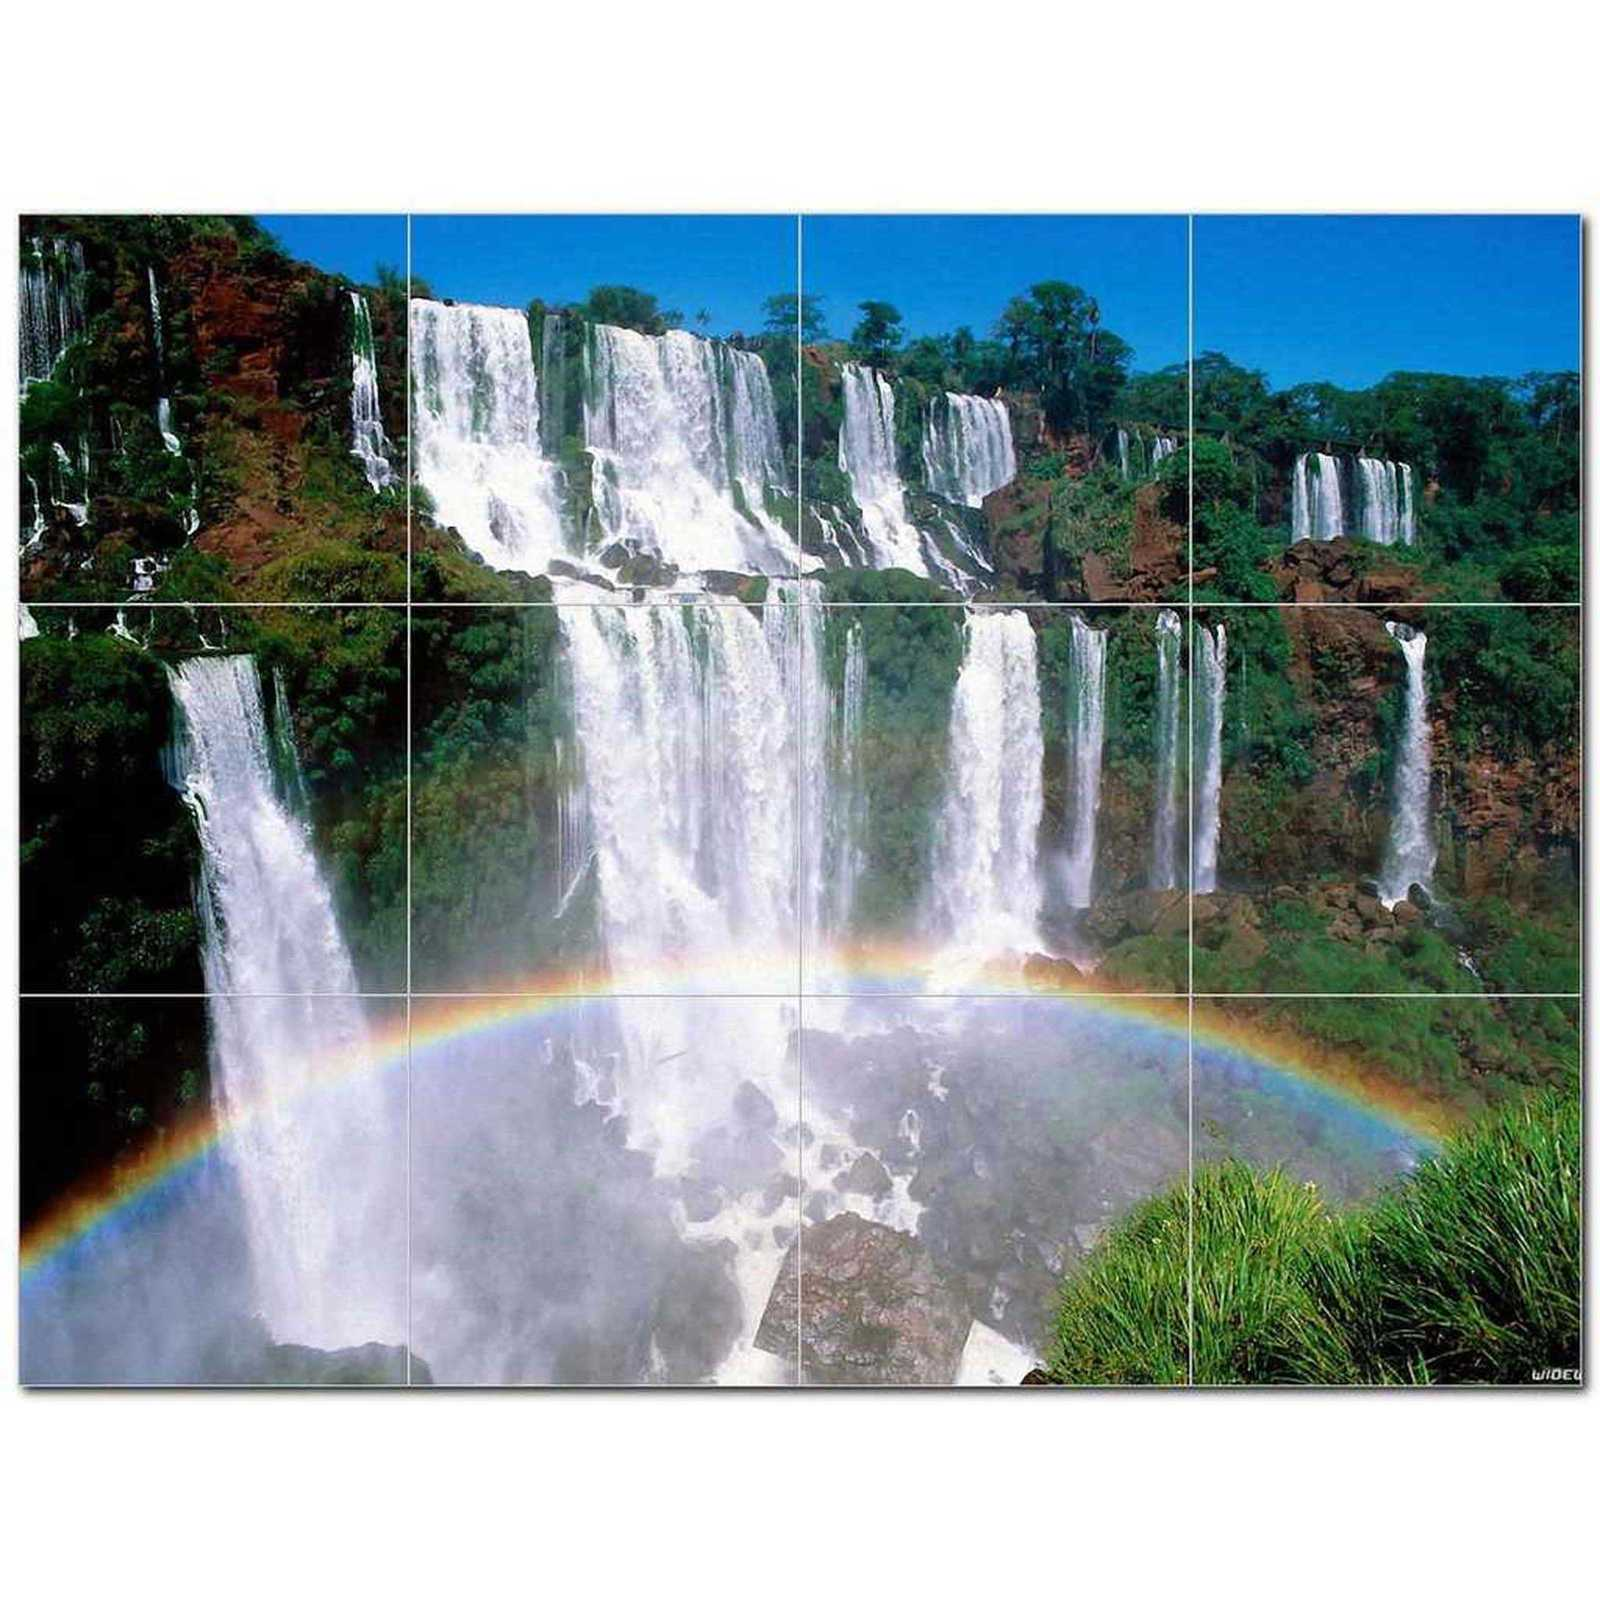 Primary image for Waterfalls Photo Ceramic Tile Mural Kitchen Backsplash Bathroom Shower BAZ406239